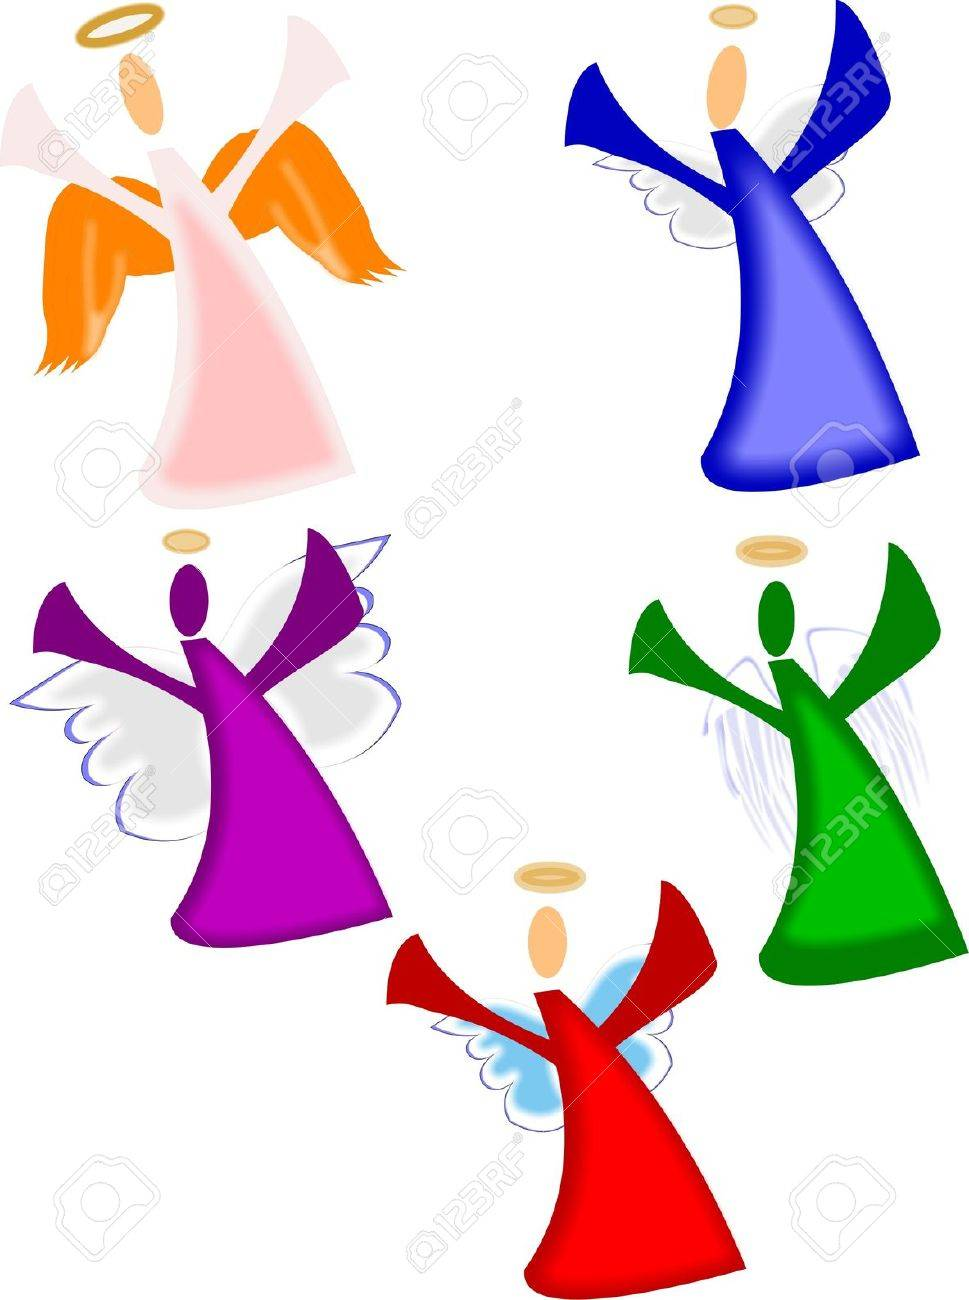 Christmas Angels On White Royalty Free Cliparts, Vectors, And Stock ...